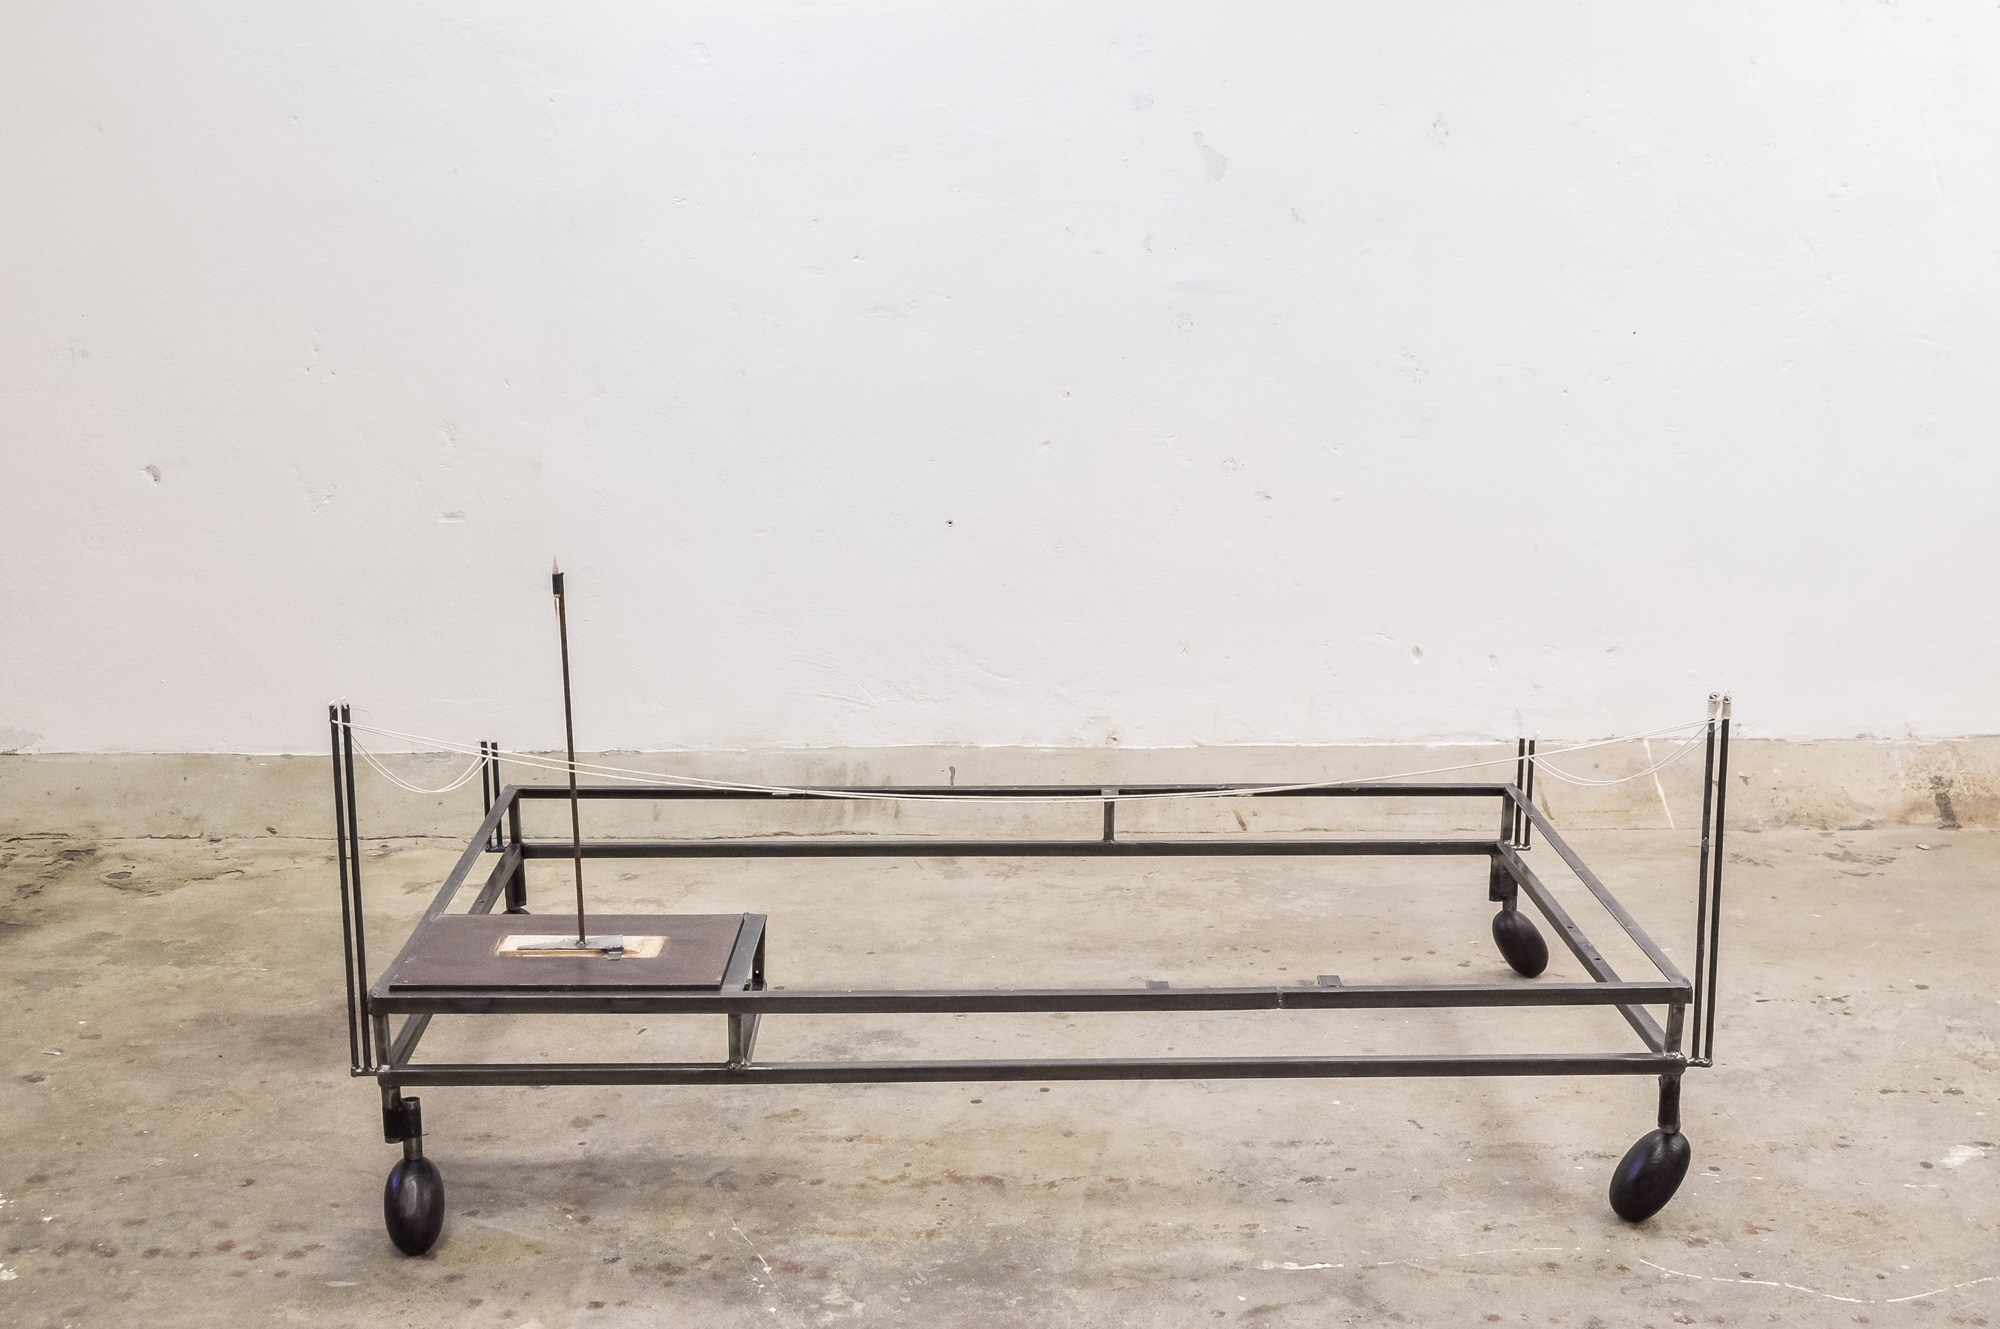 table (rocket)  │ metal, wood, fabric │ 2019 │ 65cm x 158cm x 93cm